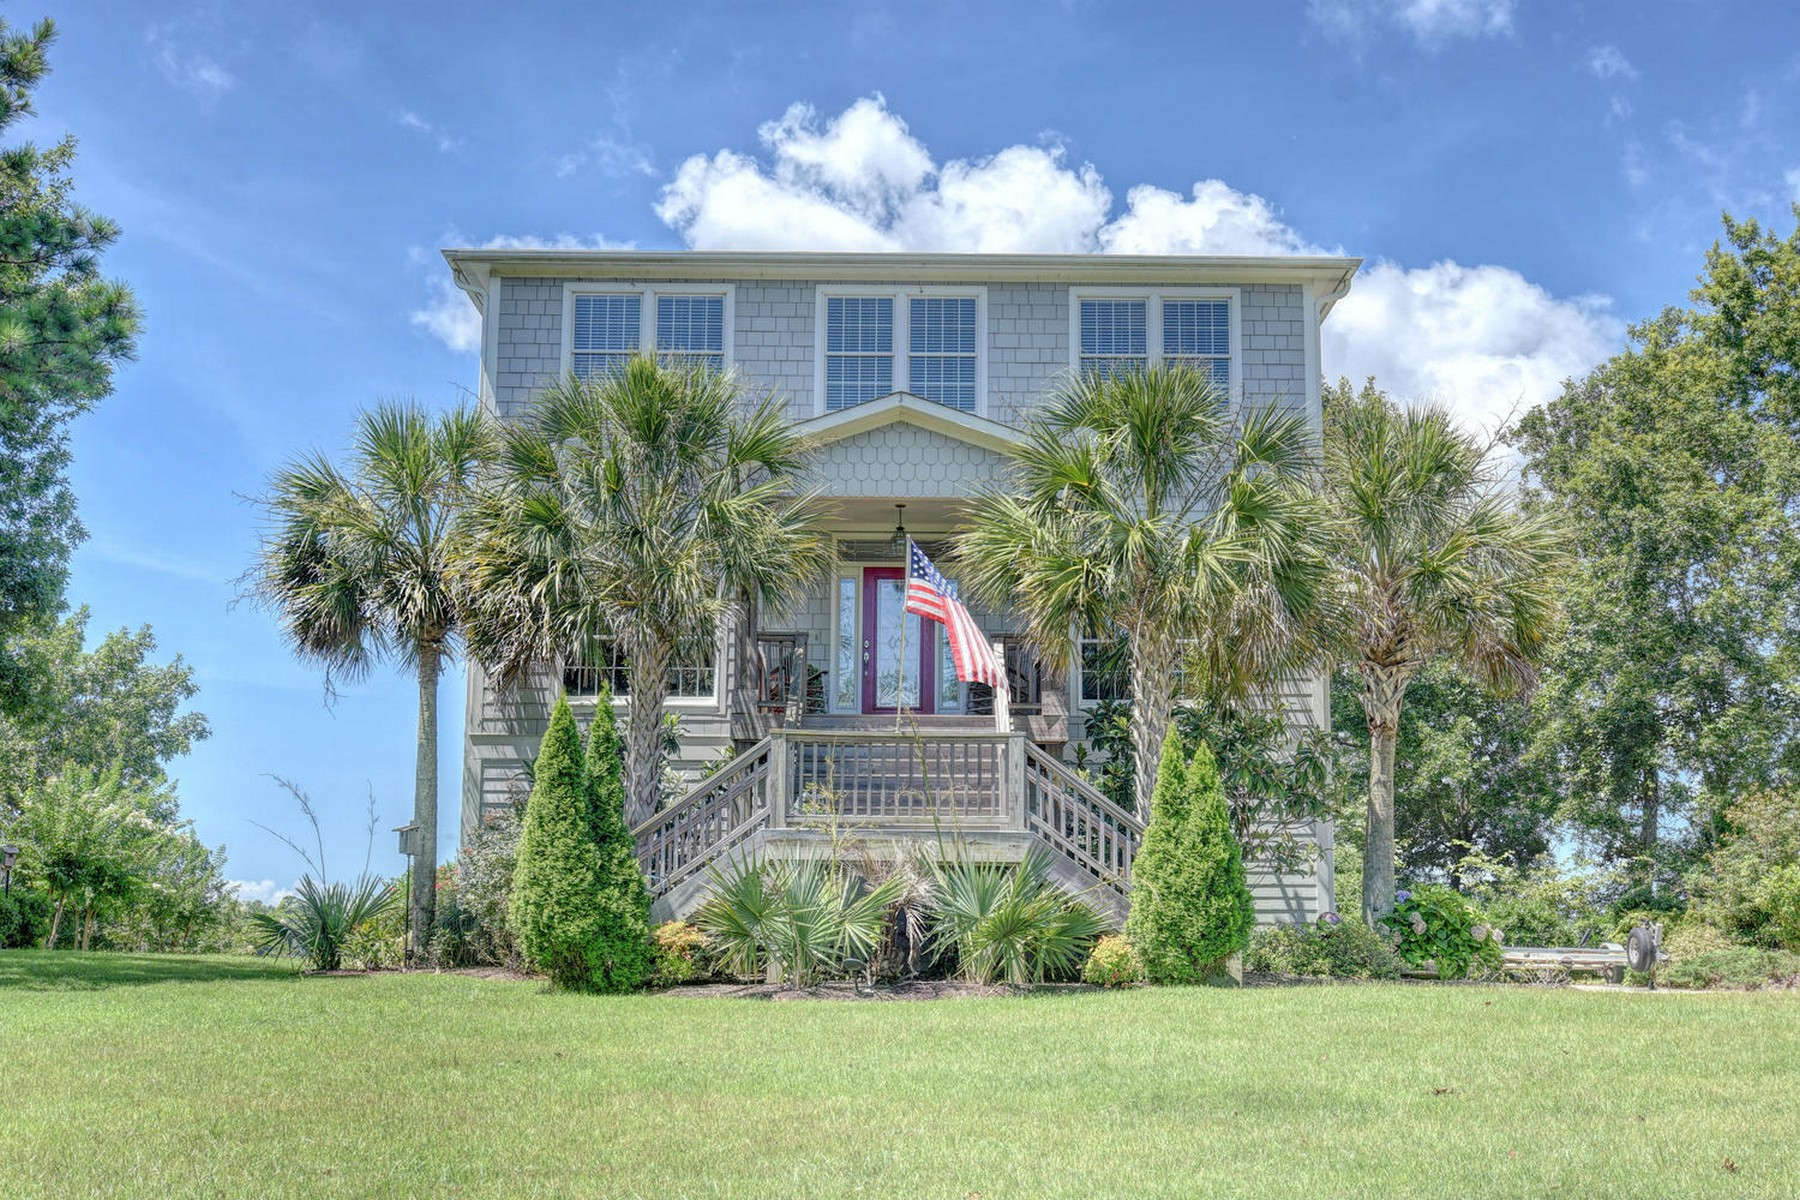 Single Family Home for Active at A Boater's Paradise on the Carolina Coast 380 S Kingfisher Lane Hampstead, North Carolina 28443 United States